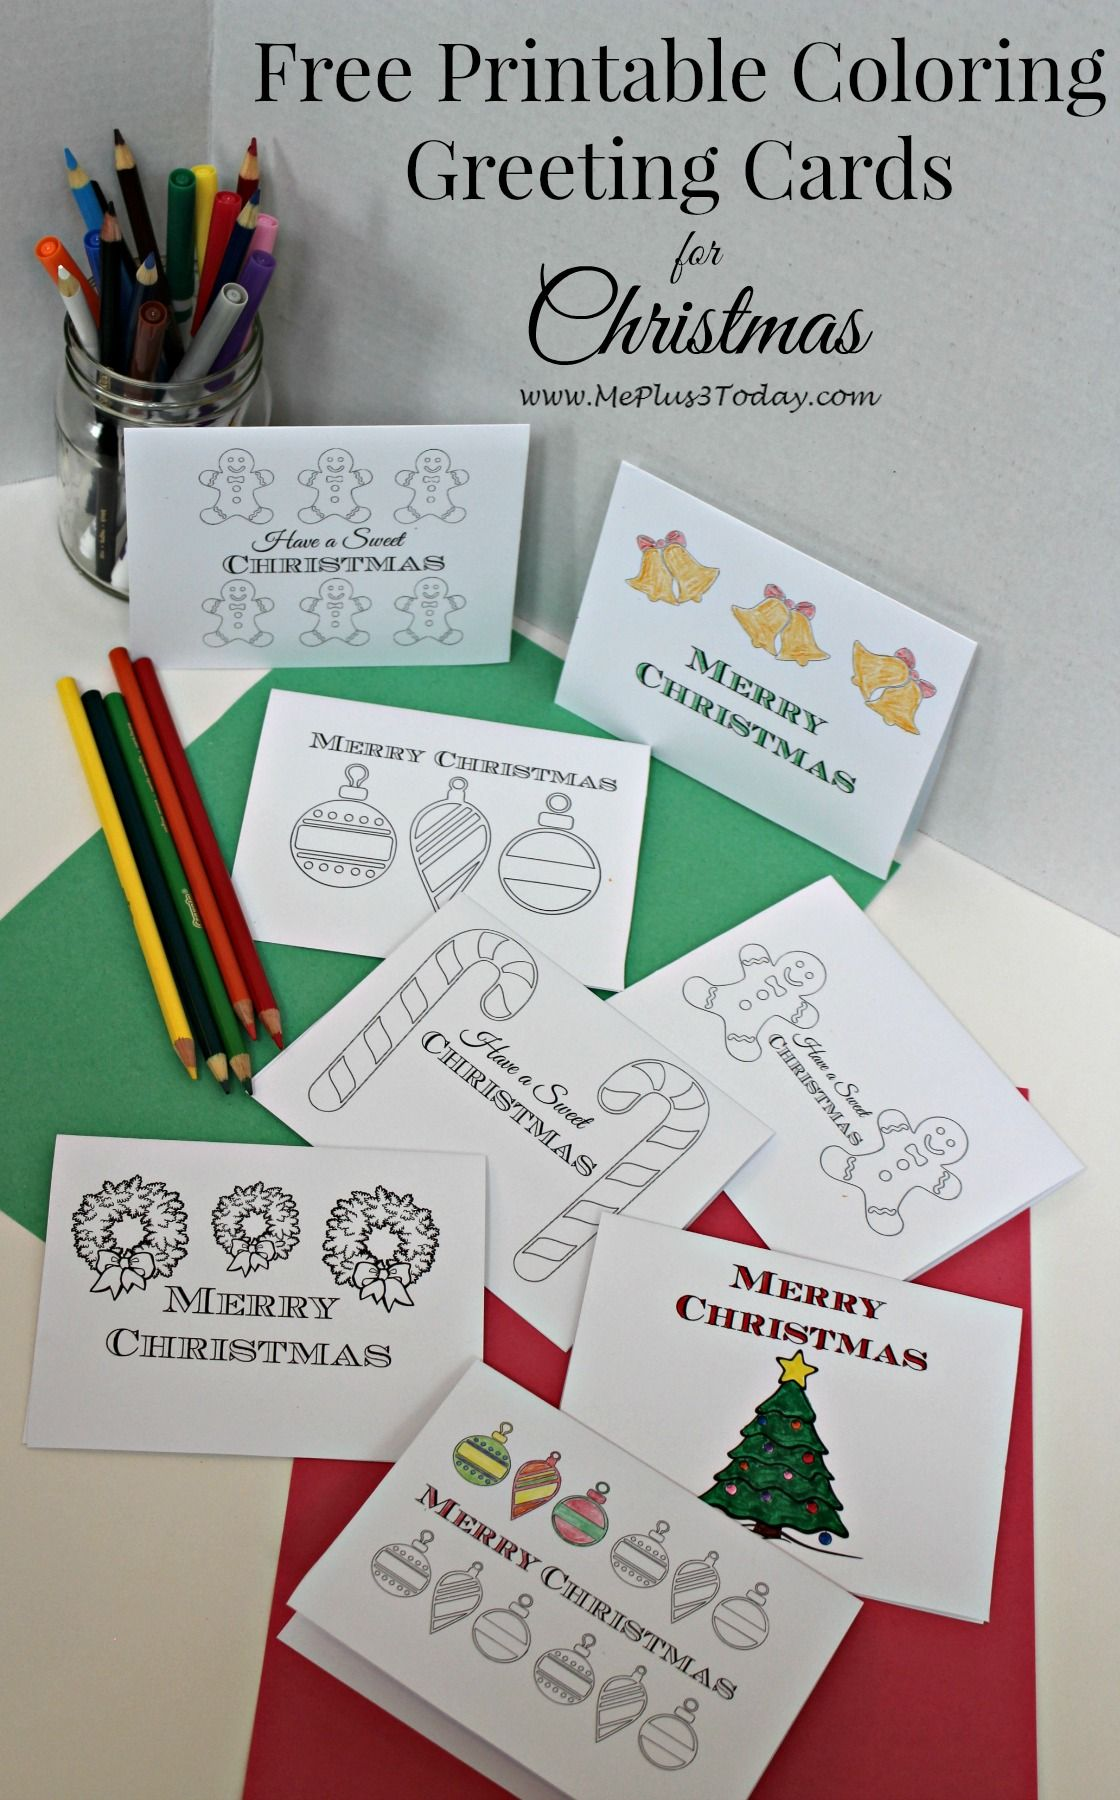 free printable christmas coloring pages these printable christmas greeting cards are the perfect way for your kids to spread cheer this holiday season